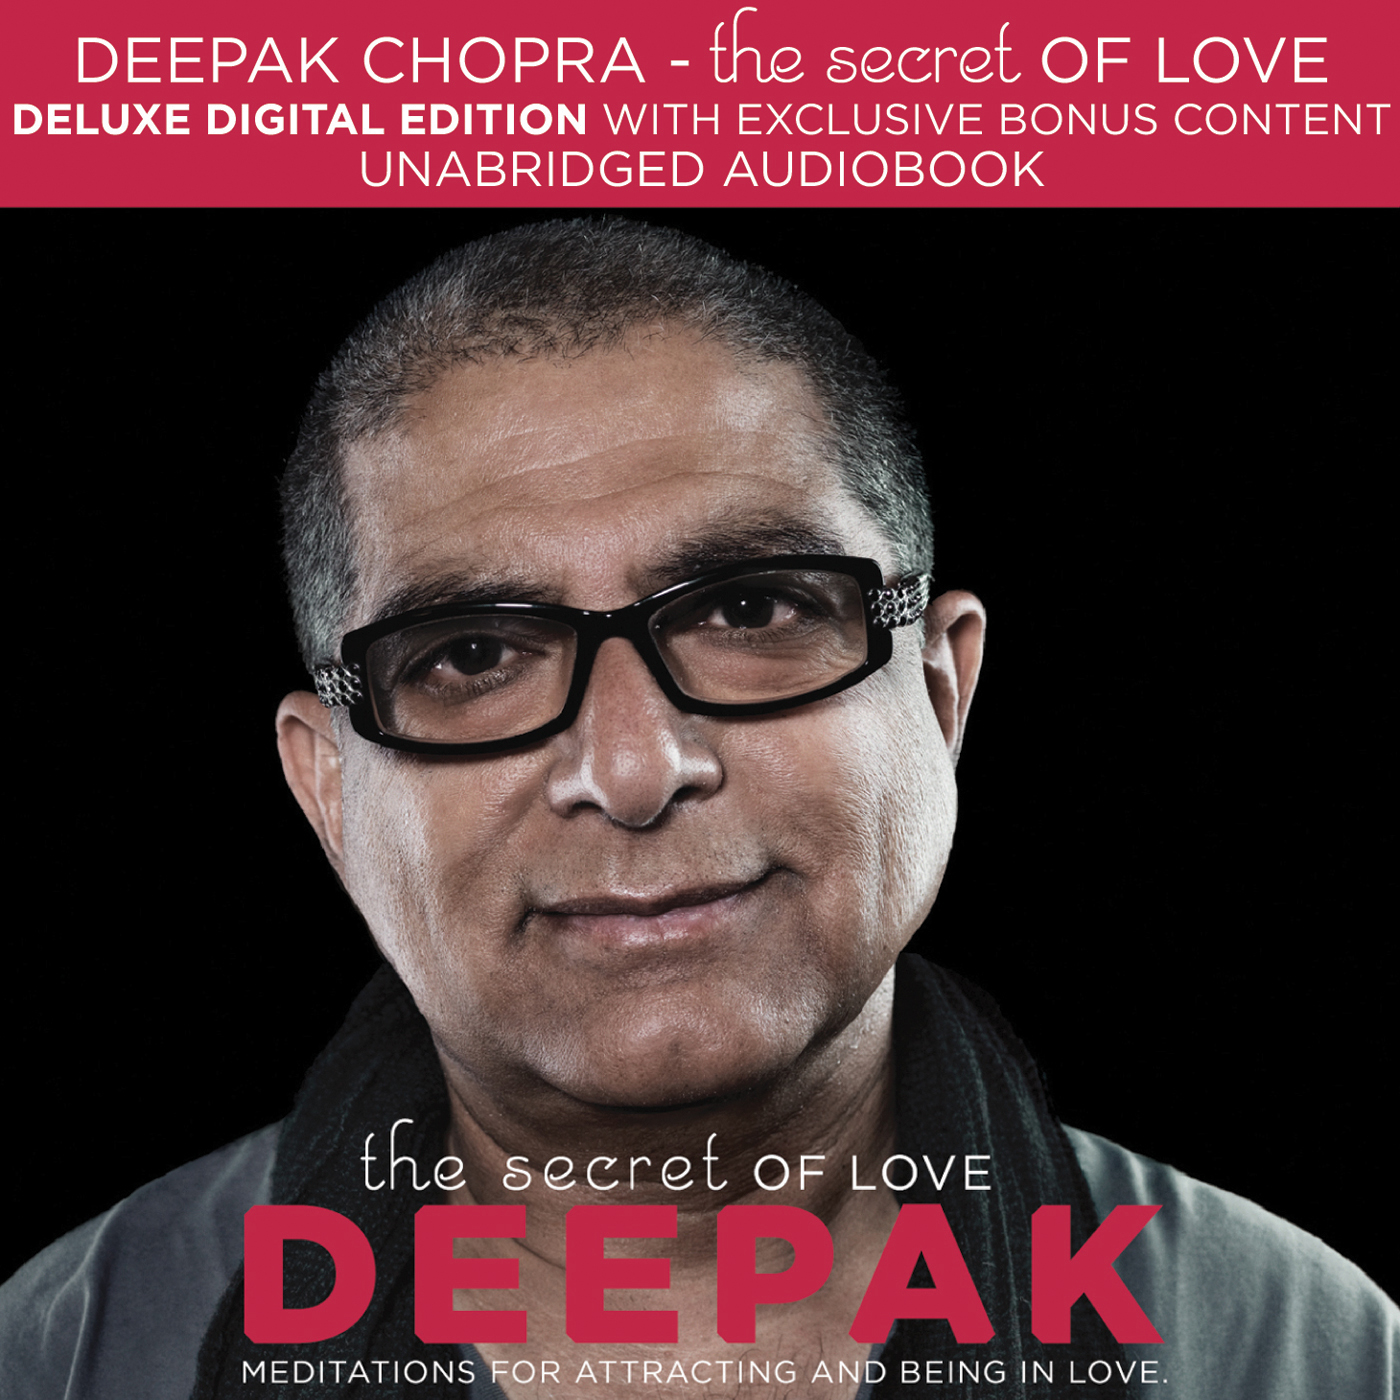 Deepak chopra meditation for attracting and being in love youtube.